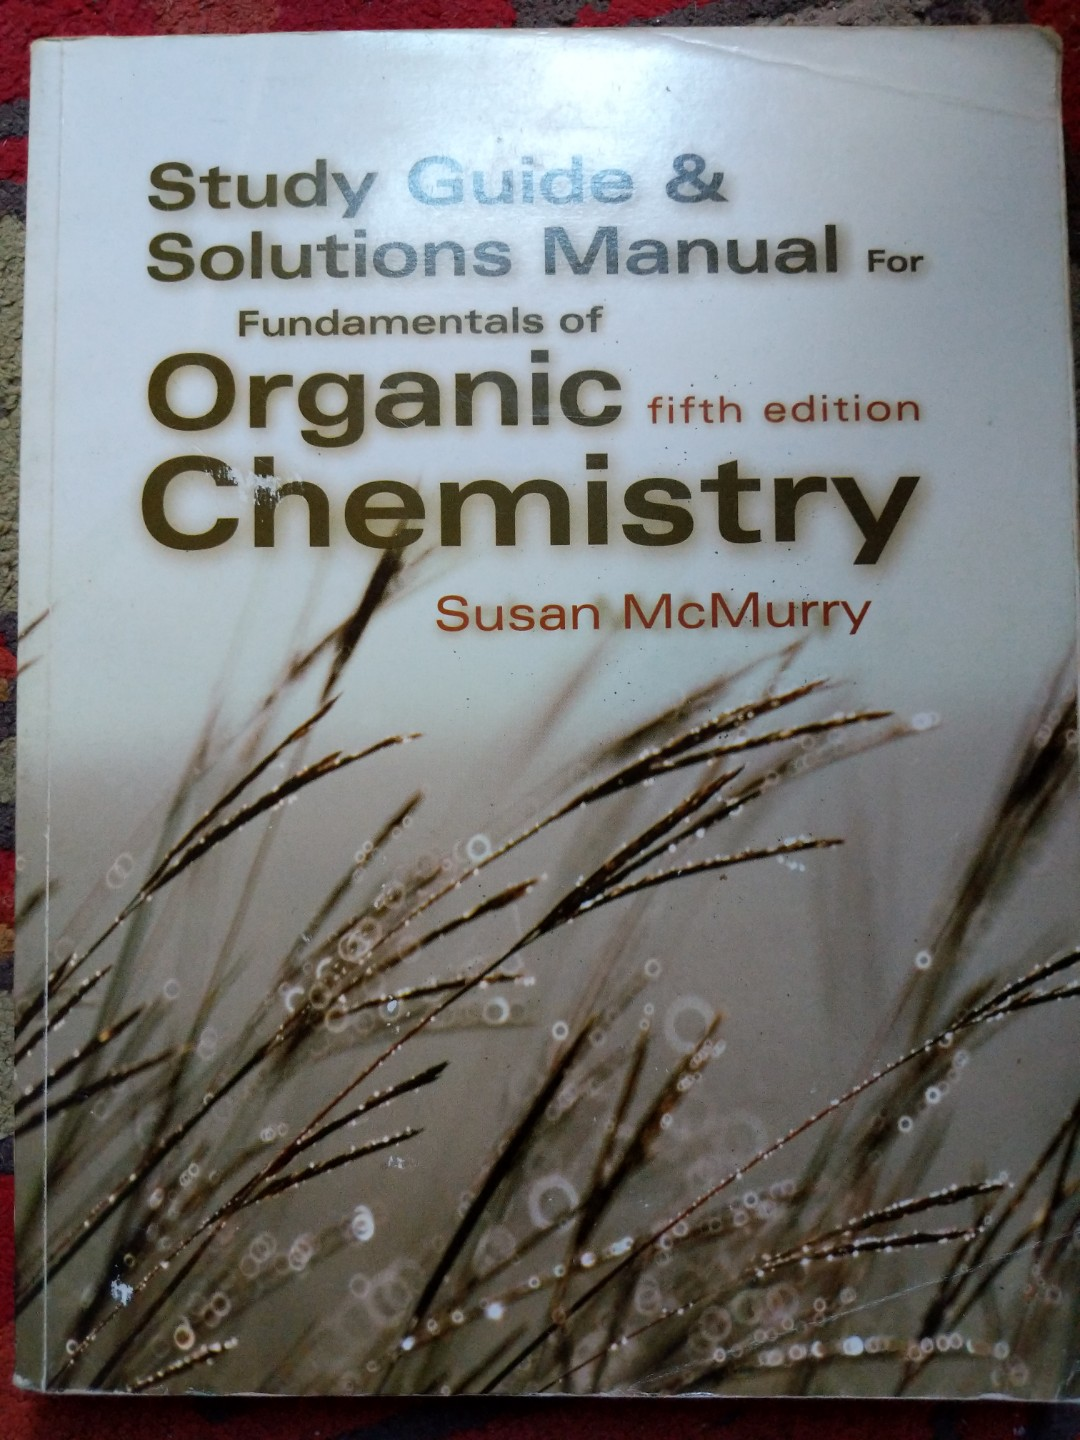 Srudy Guide Abd Solutions Manual For Fundamentals Of Organic